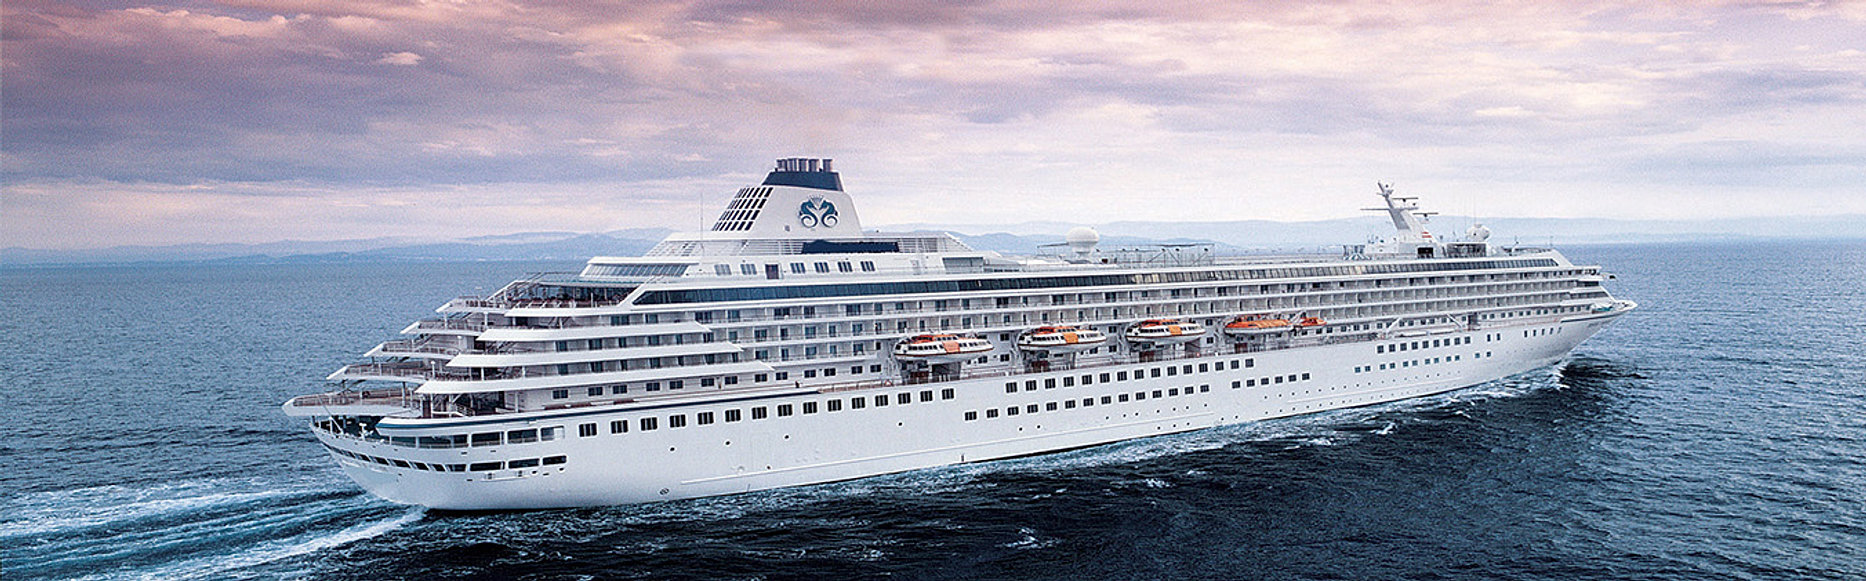 QPS Marine Ships Cruise Ships For Sale Passenger Ships For Sale - Mini cruise ships for sale